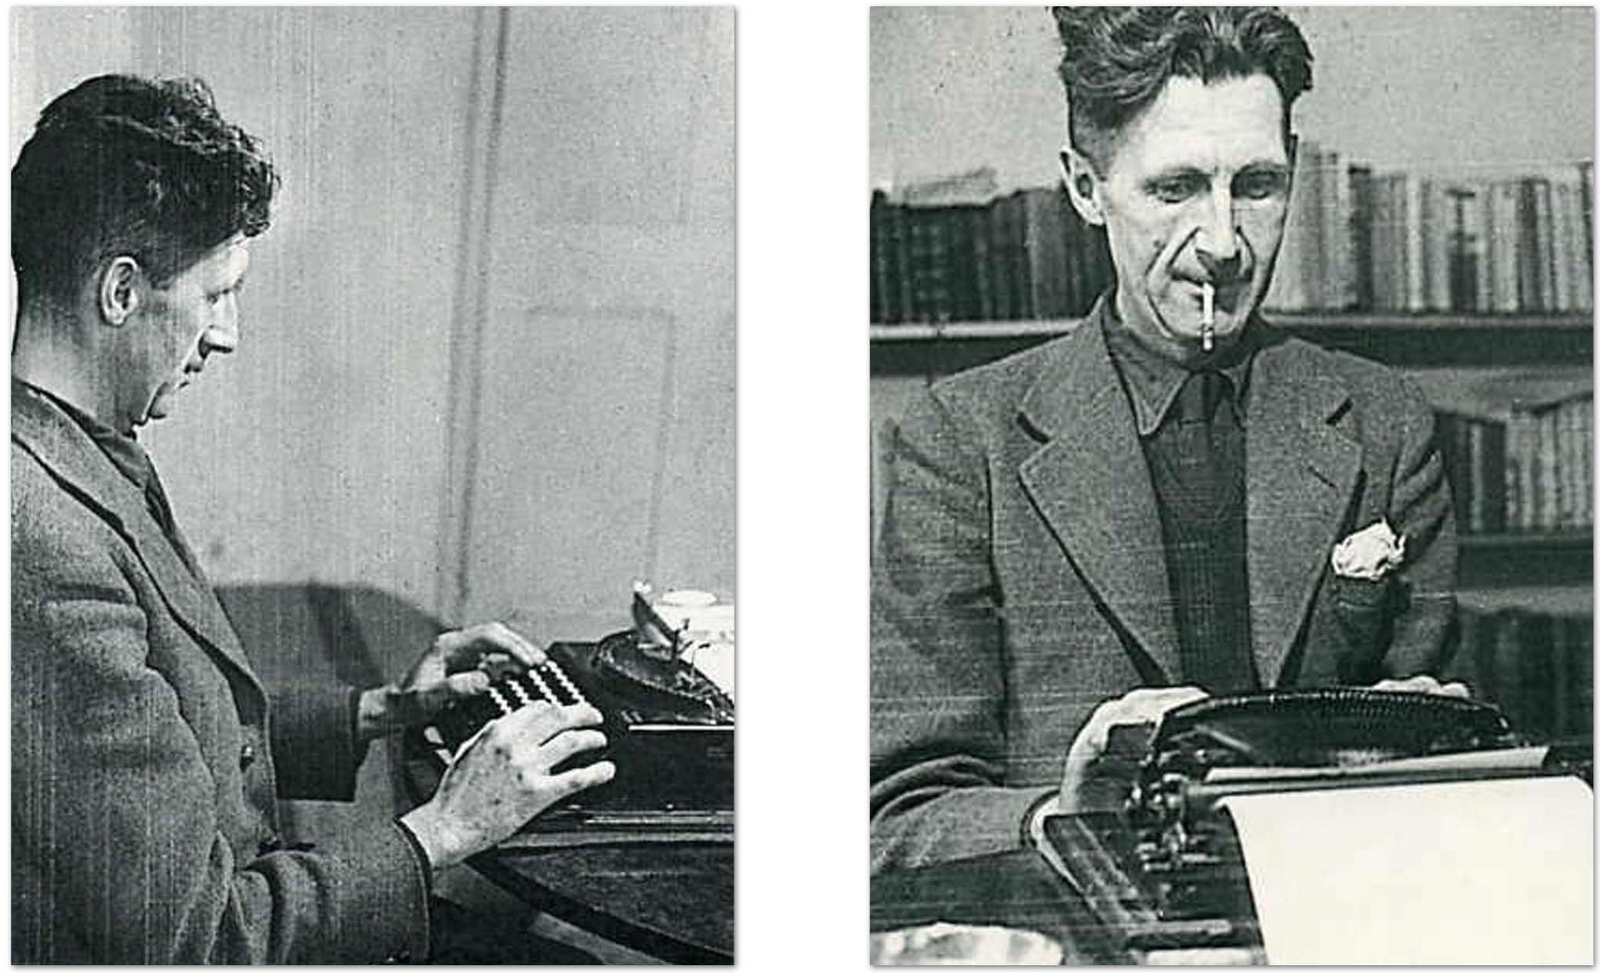 george orwell essay on politics and the english language 91 121 george orwell essay on politics and the english language